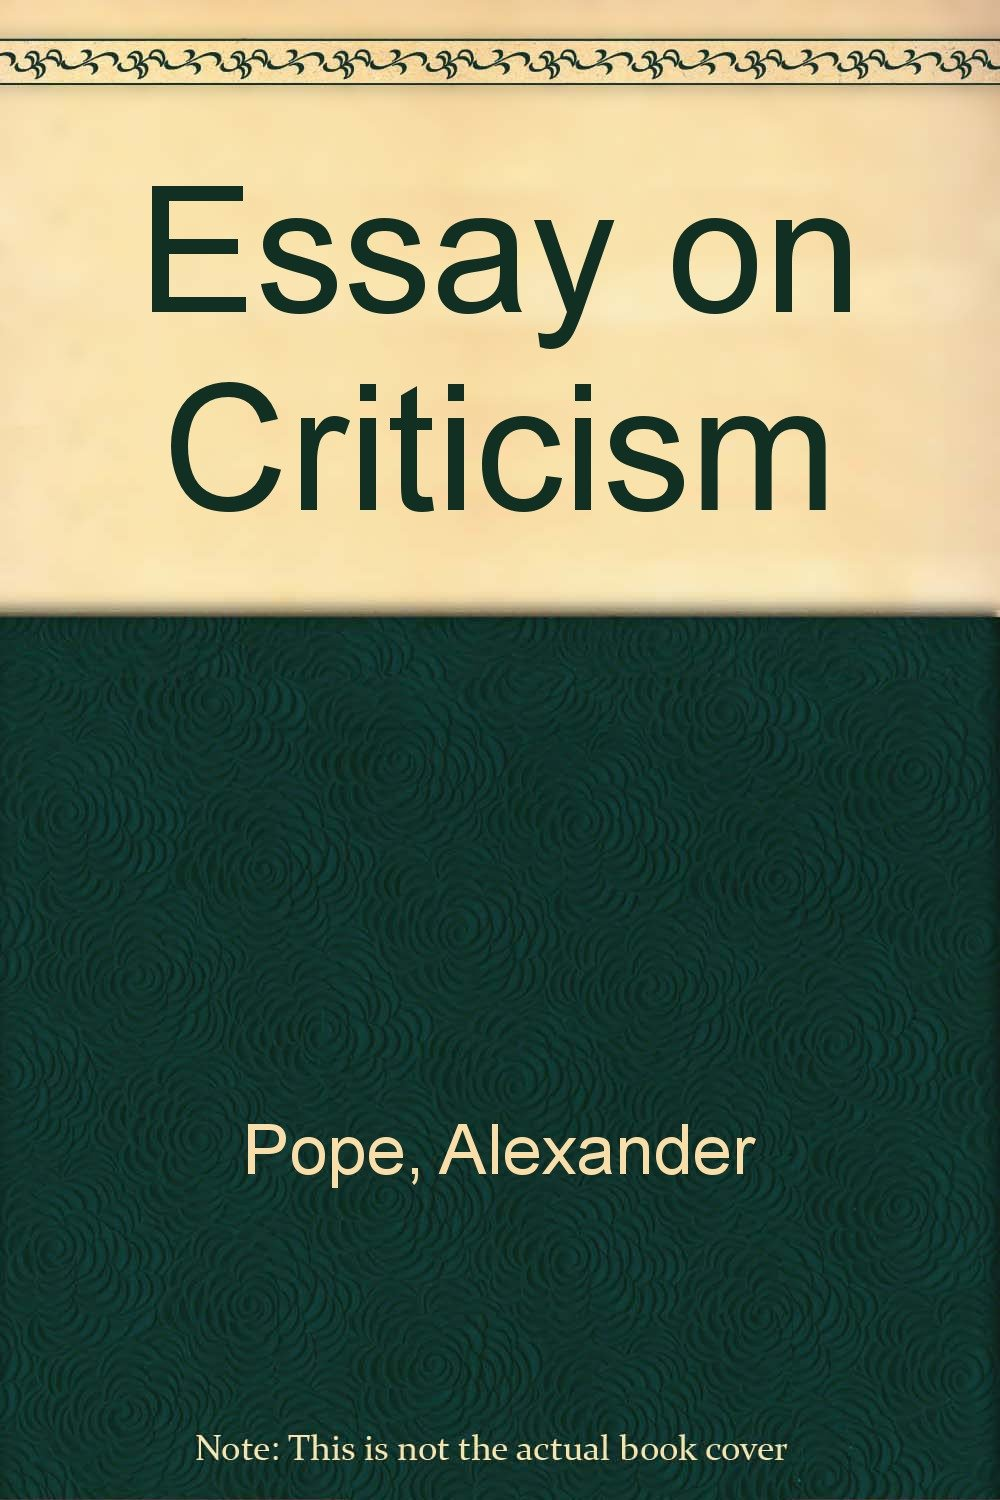 005 Alexander Pope Essay On Criticism Example Outstanding Part 1 Analysis Summary Full